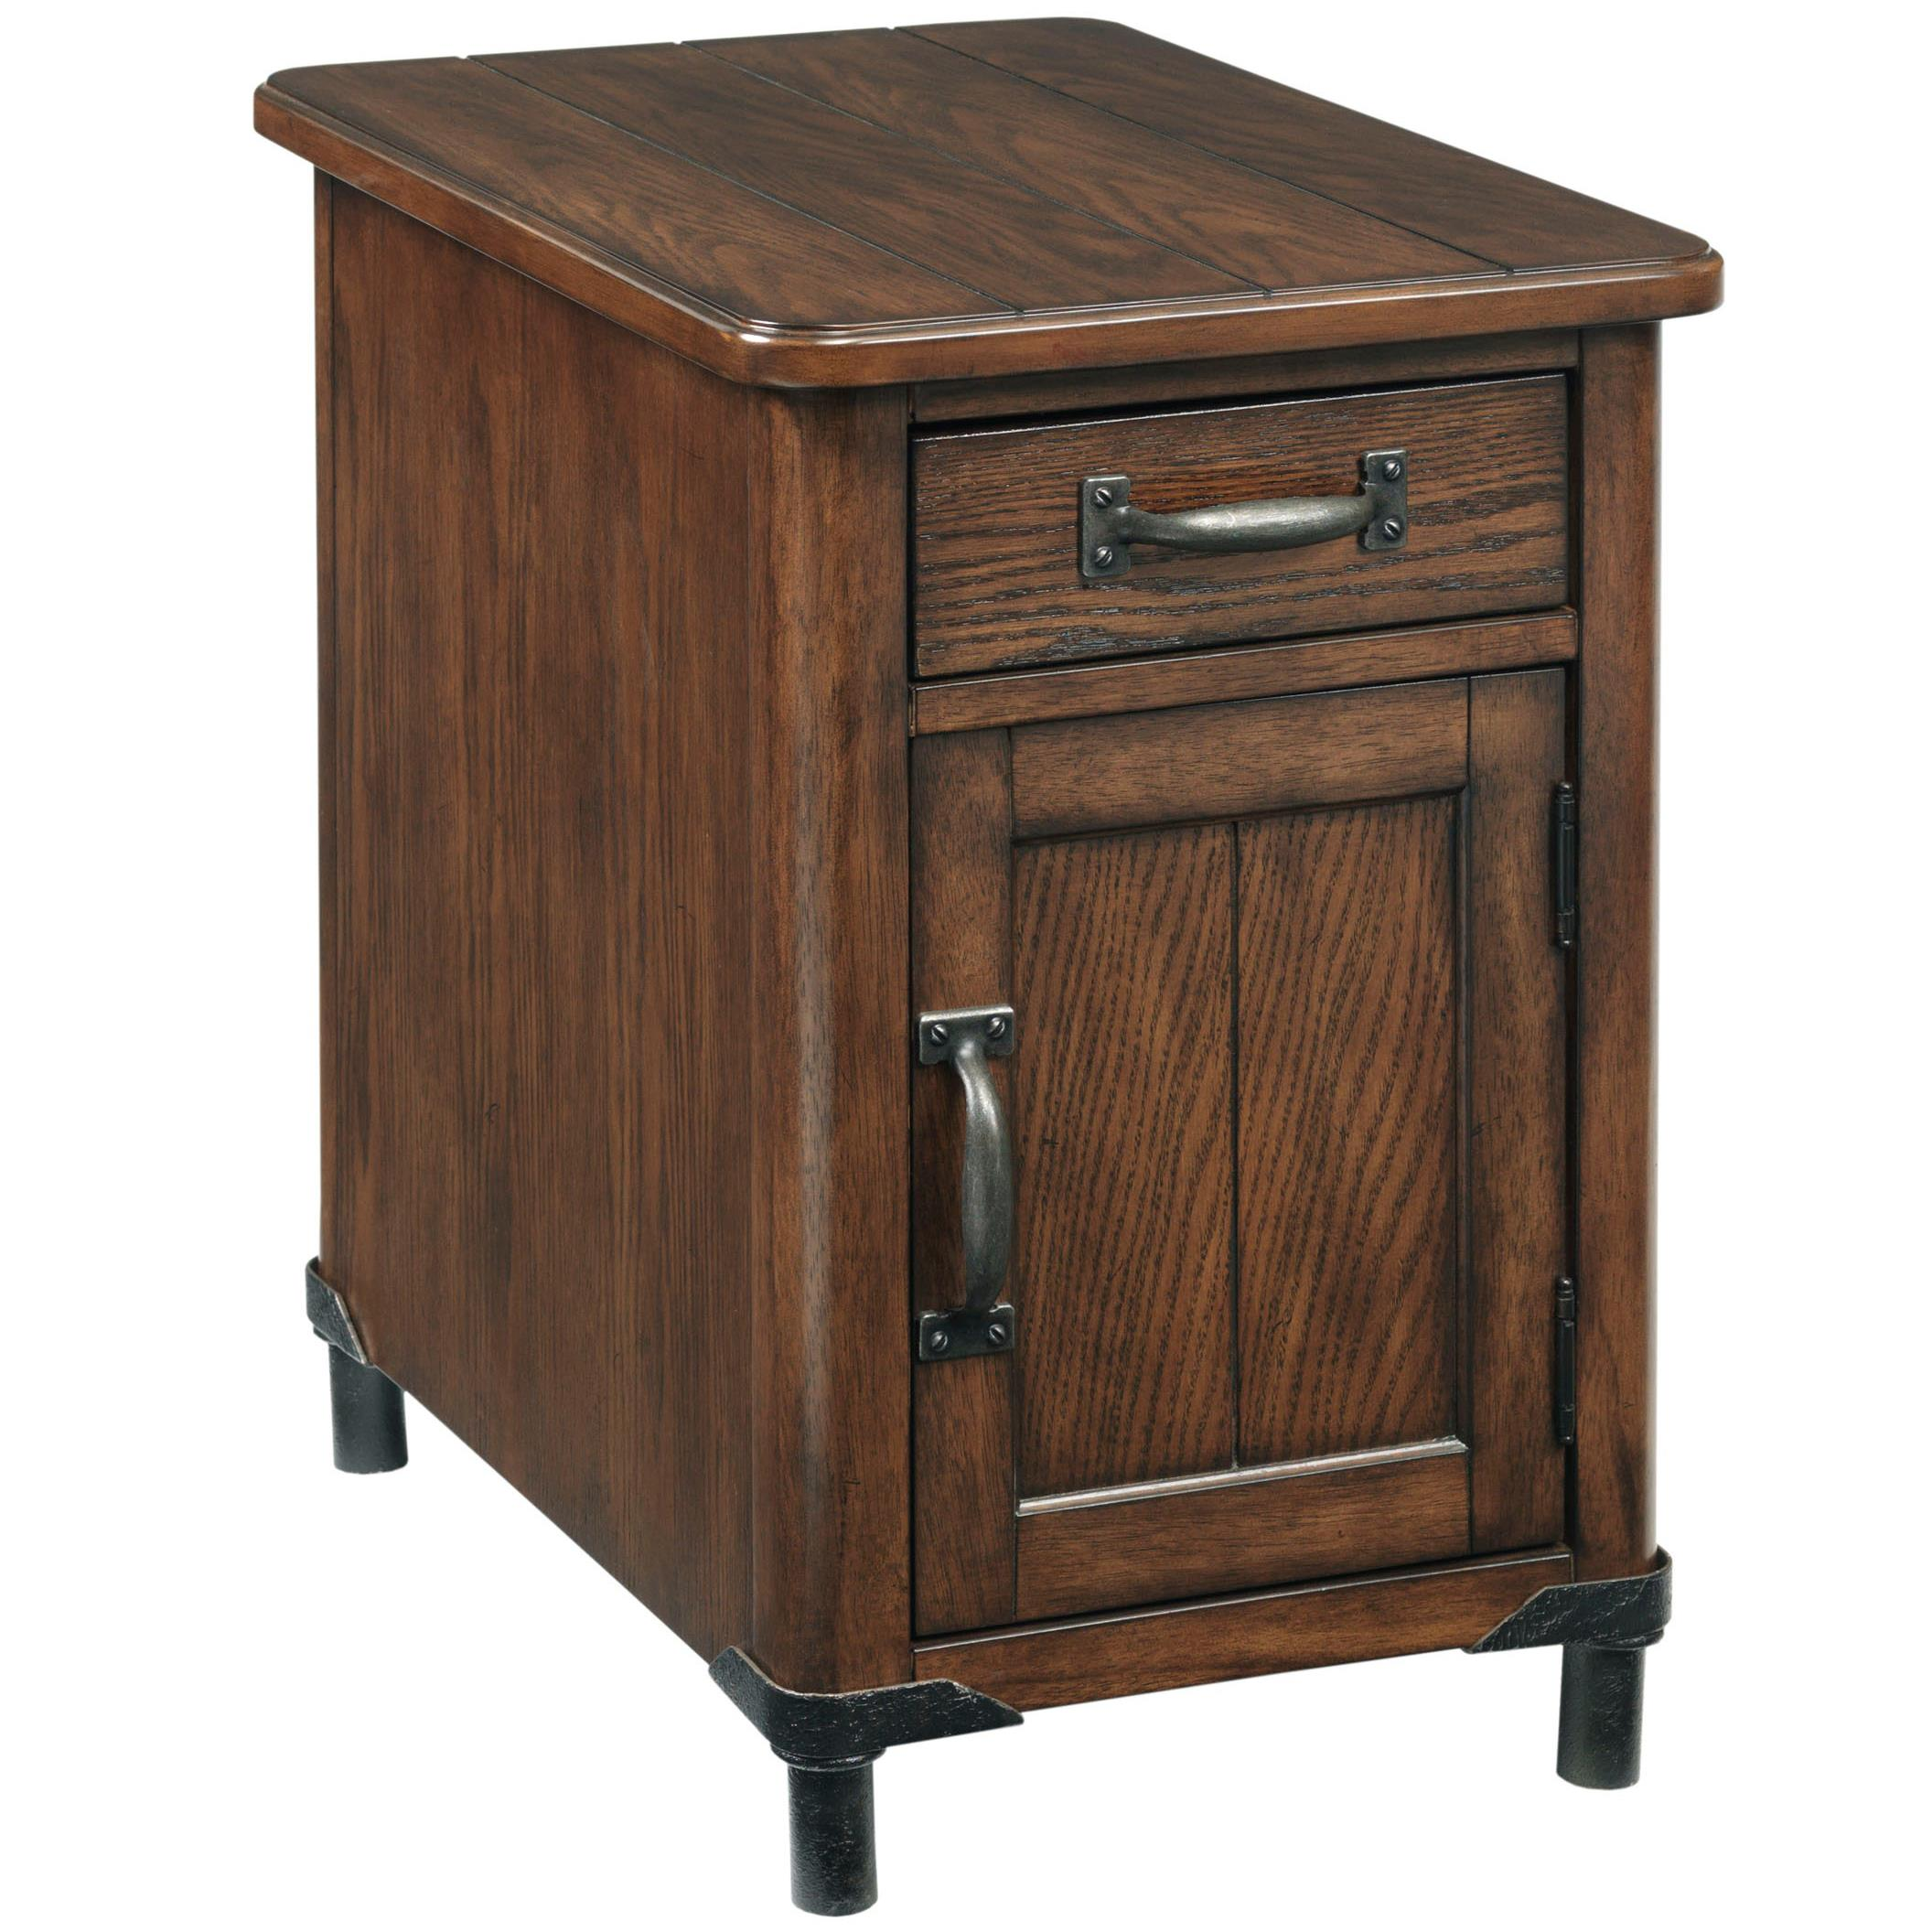 Broyhill Furniture Saluda Chairside Chest - Item Number: 3353-004